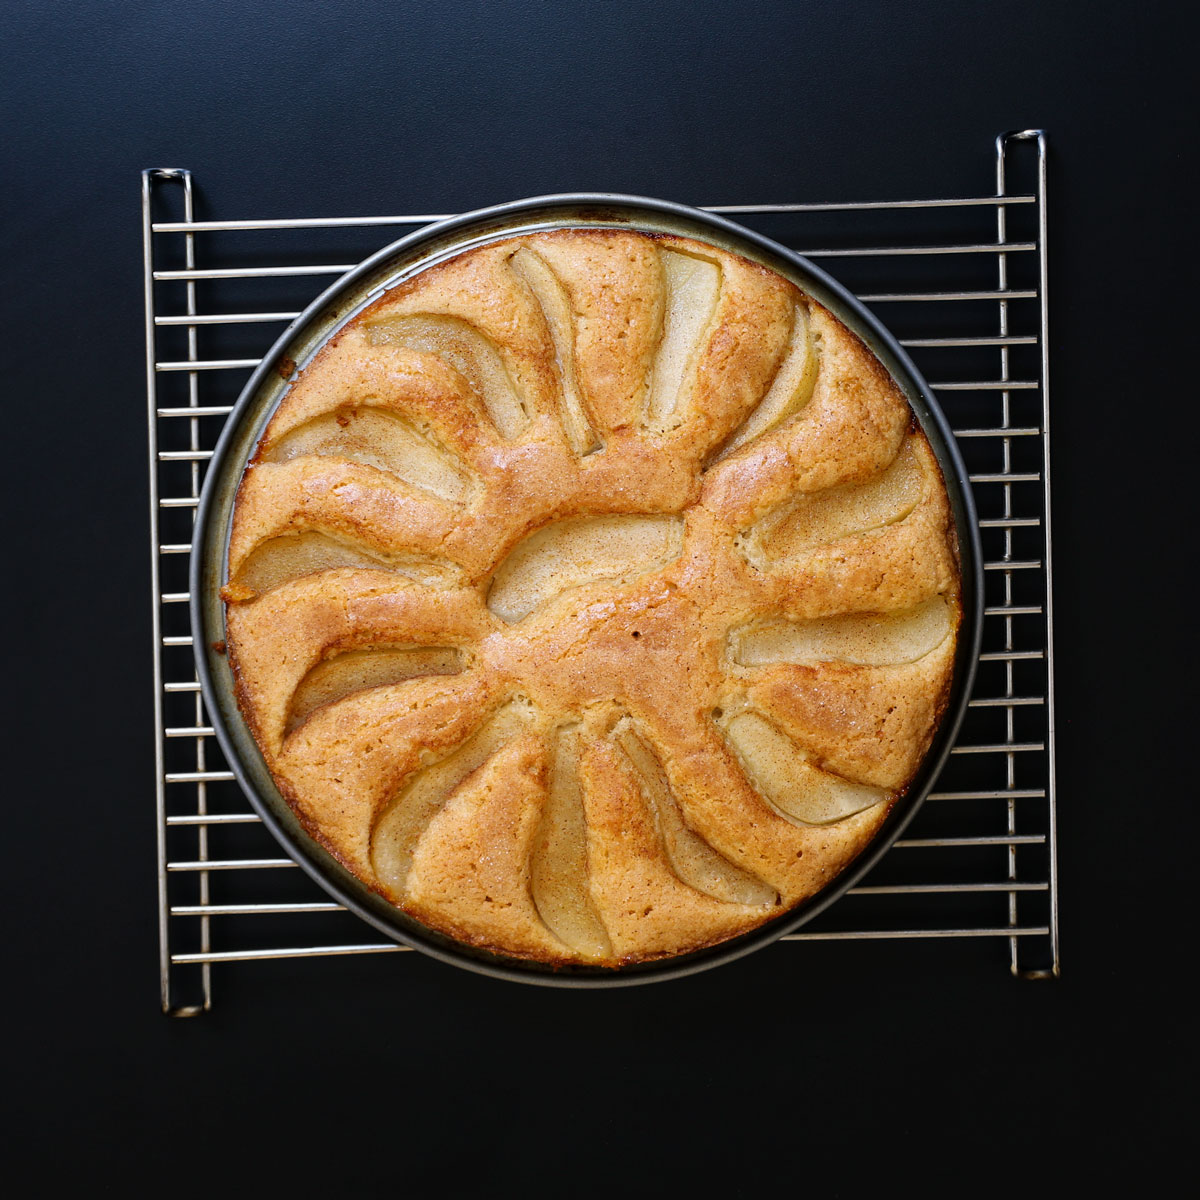 baked pear cake cooling on rack.